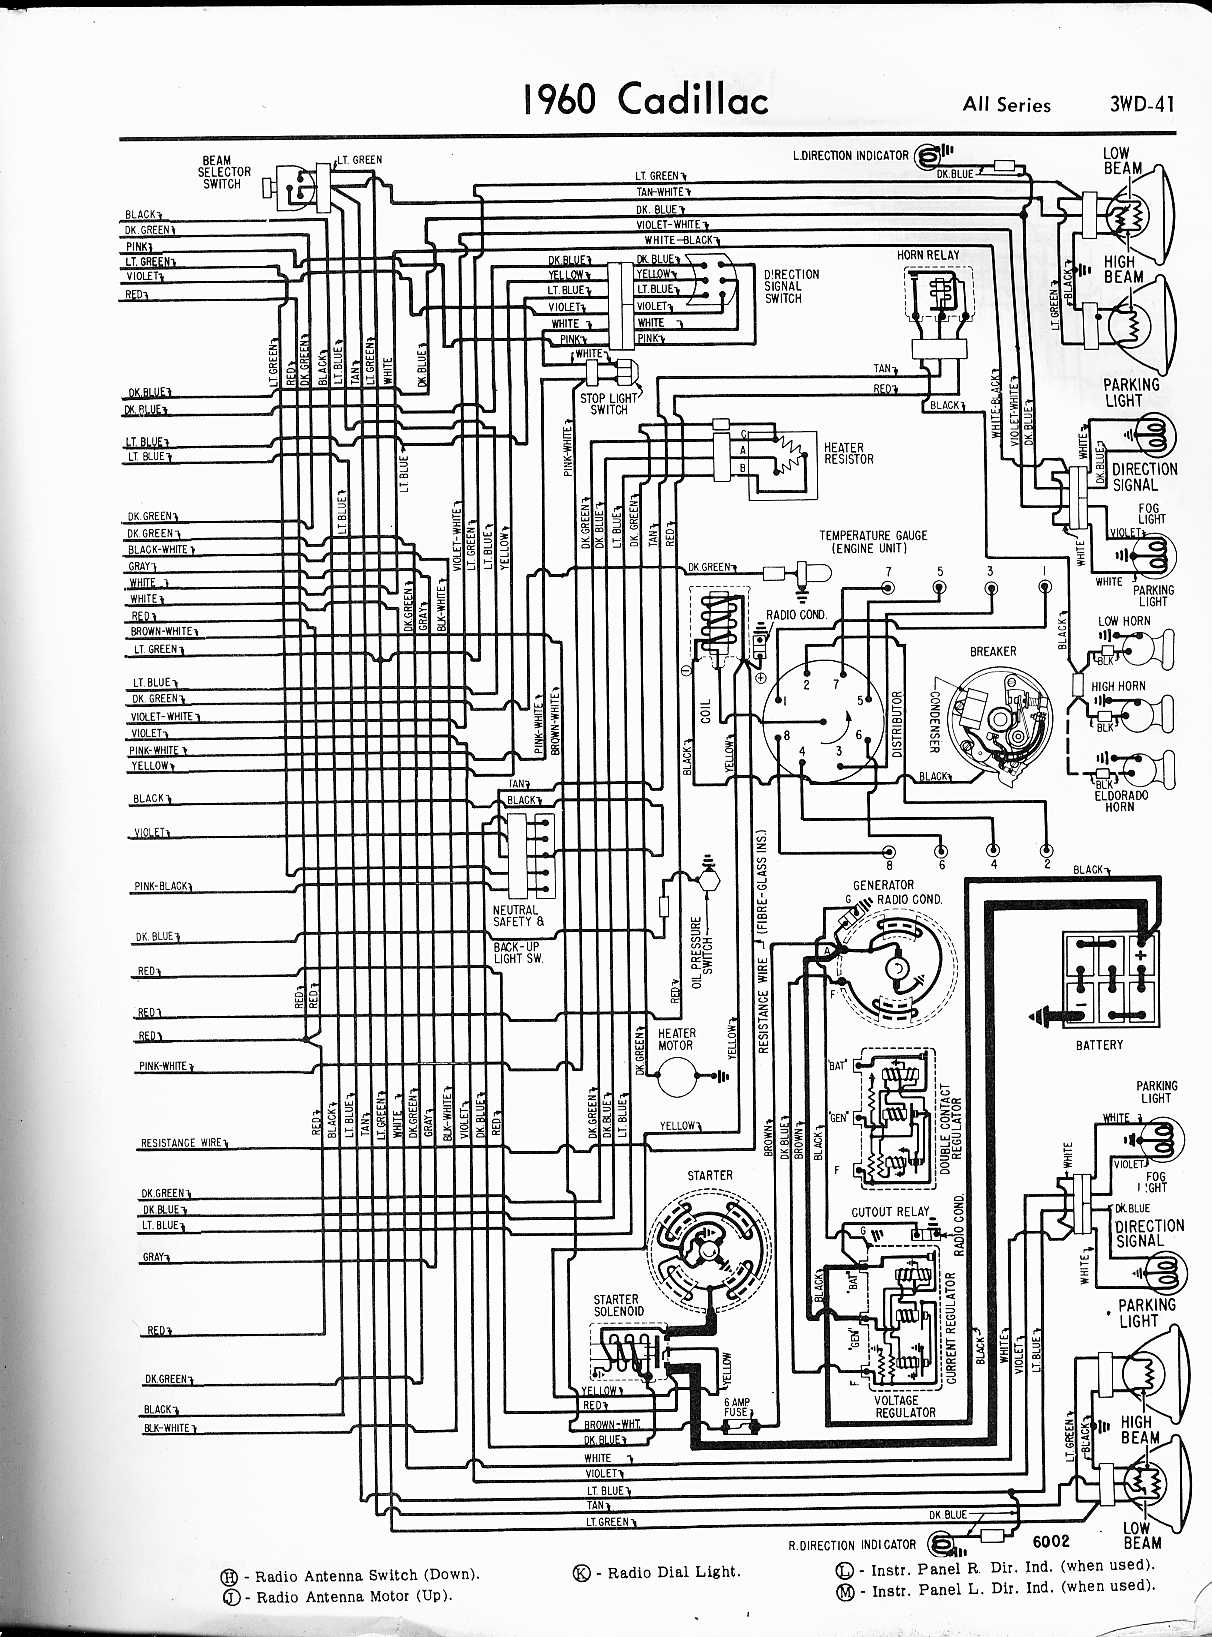 [SCHEMATICS_48IU]  DIAGRAM] 1988 Cadillac Wiring Diagrams FULL Version HD Quality Wiring  Diagrams - EVOLVEGARDENDIAGRAM.K-DANSE.FR | Cadillac Engine Wiring Diagram |  | K-danse.fr